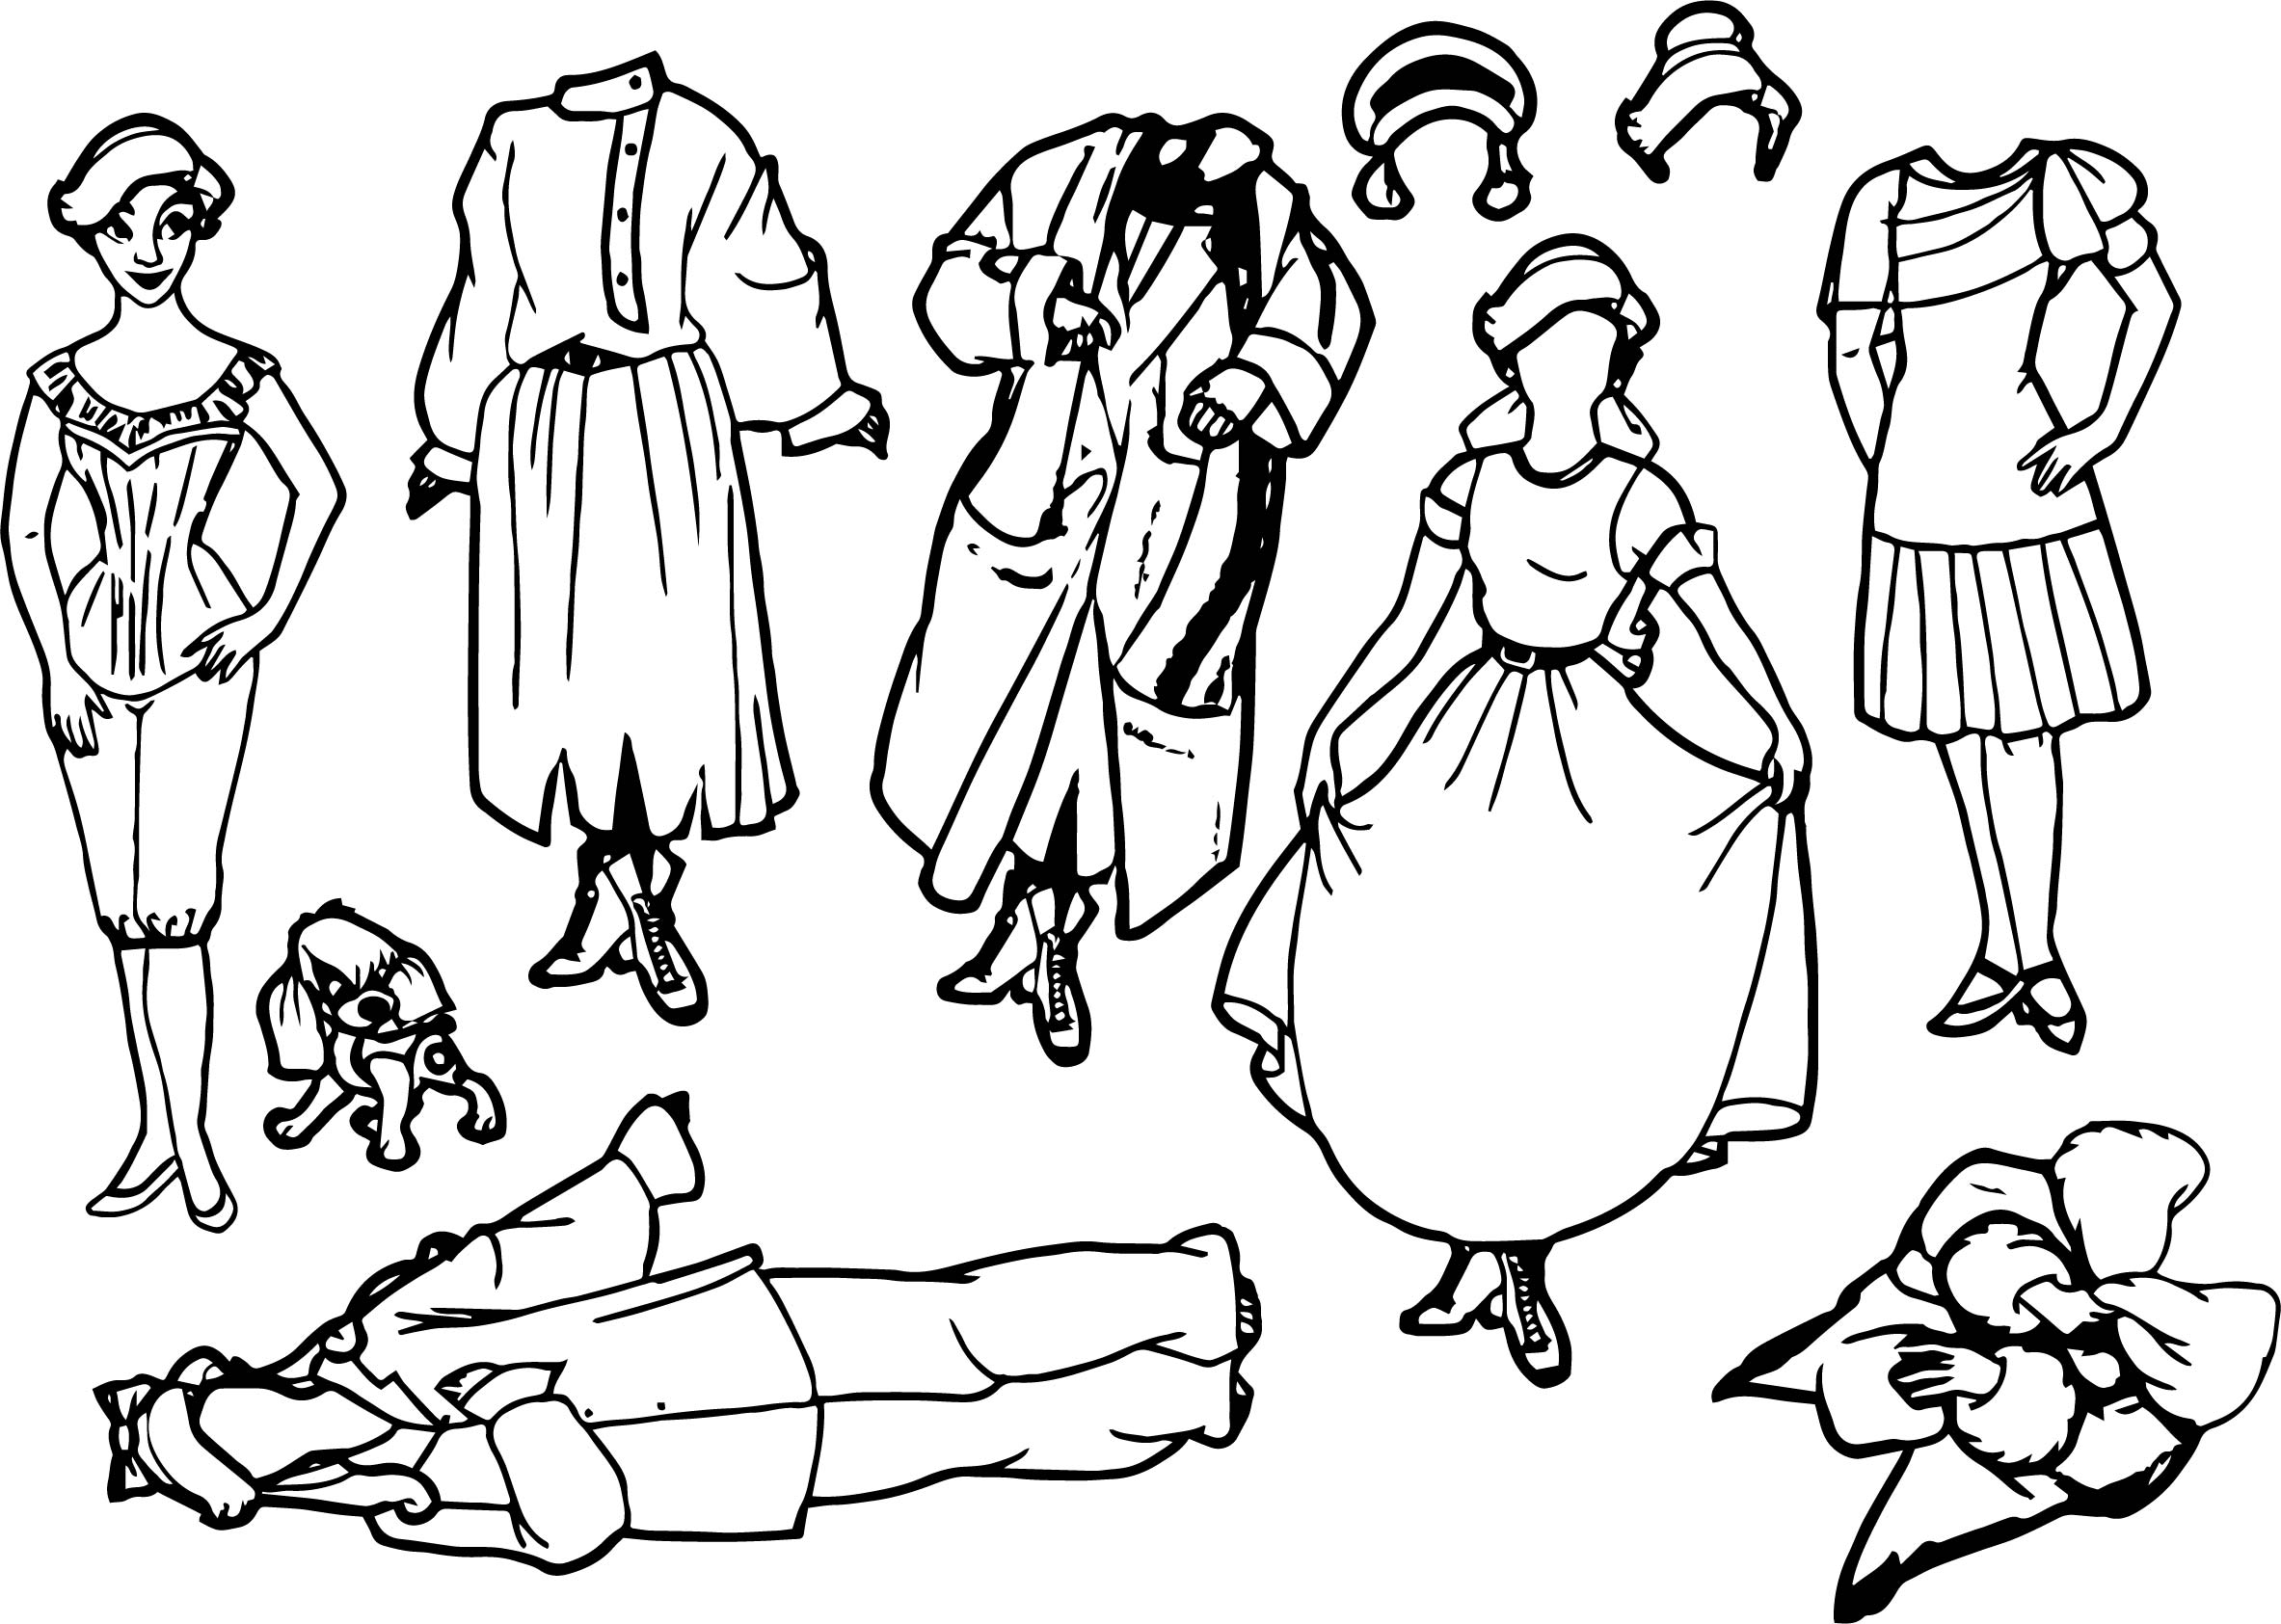 Anastasia Paper Dolls Coloring Page | Wecoloringpage.com